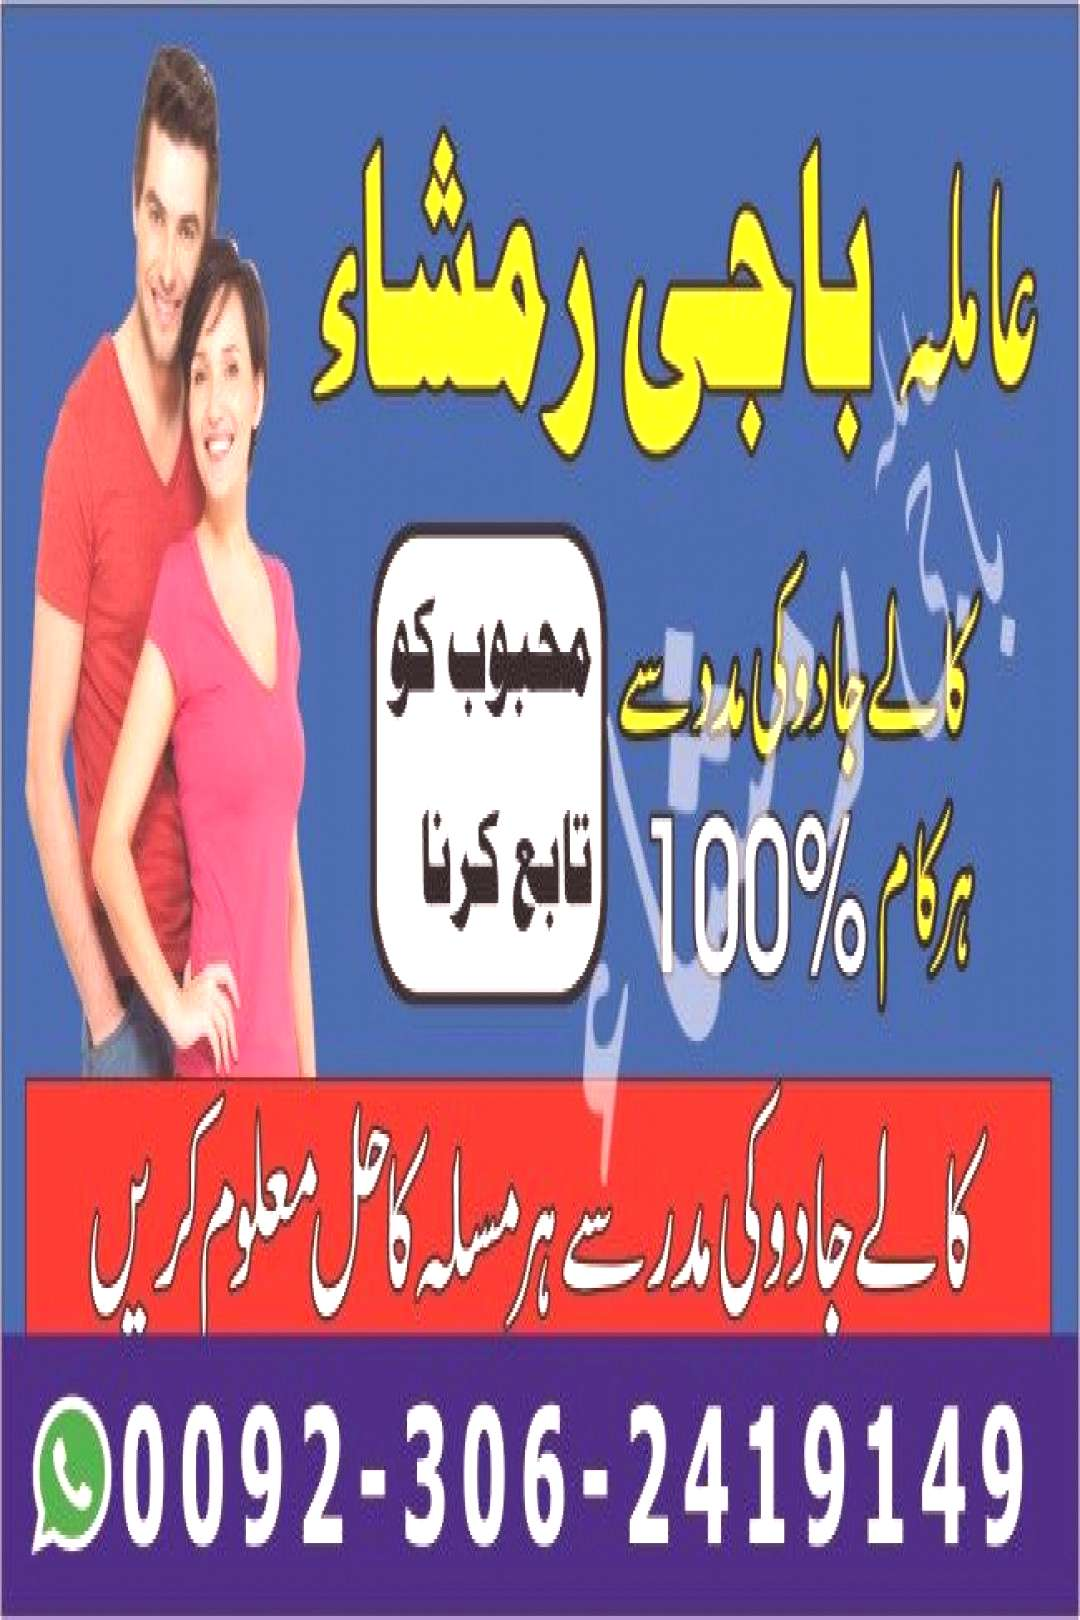 facebook top no 10 Amil baba-amil baba in Pakistan   Archis institute free classifieds bangali baba